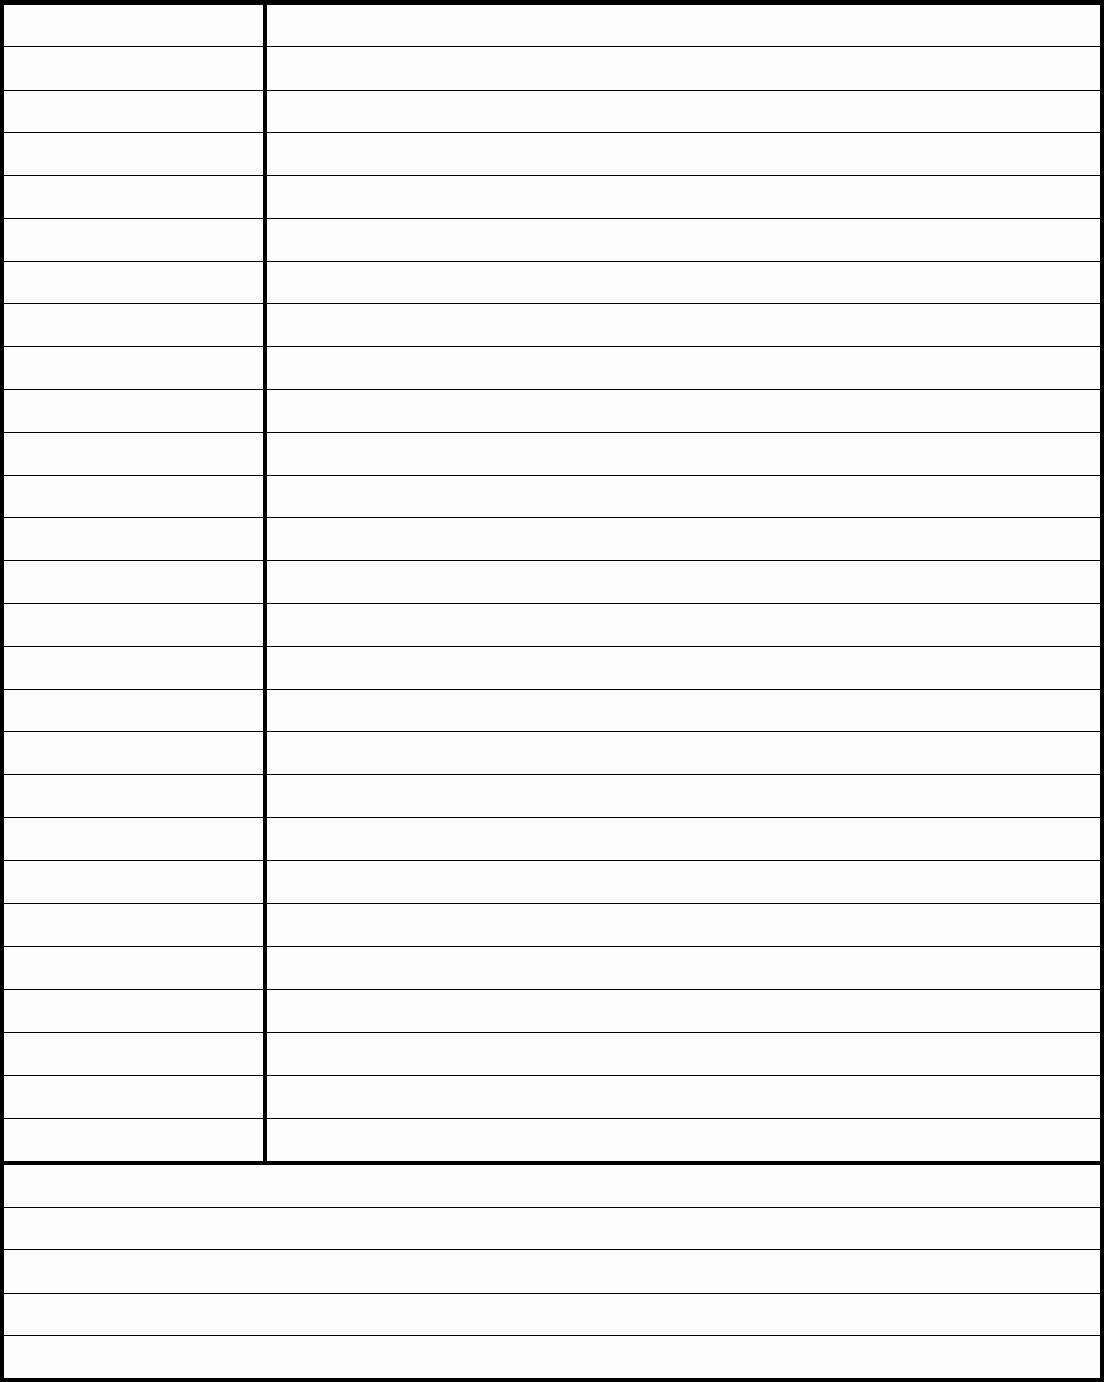 Avid Cornell Note Template Beautiful Cornell Notes Template Avid Edit Fill Sign Line